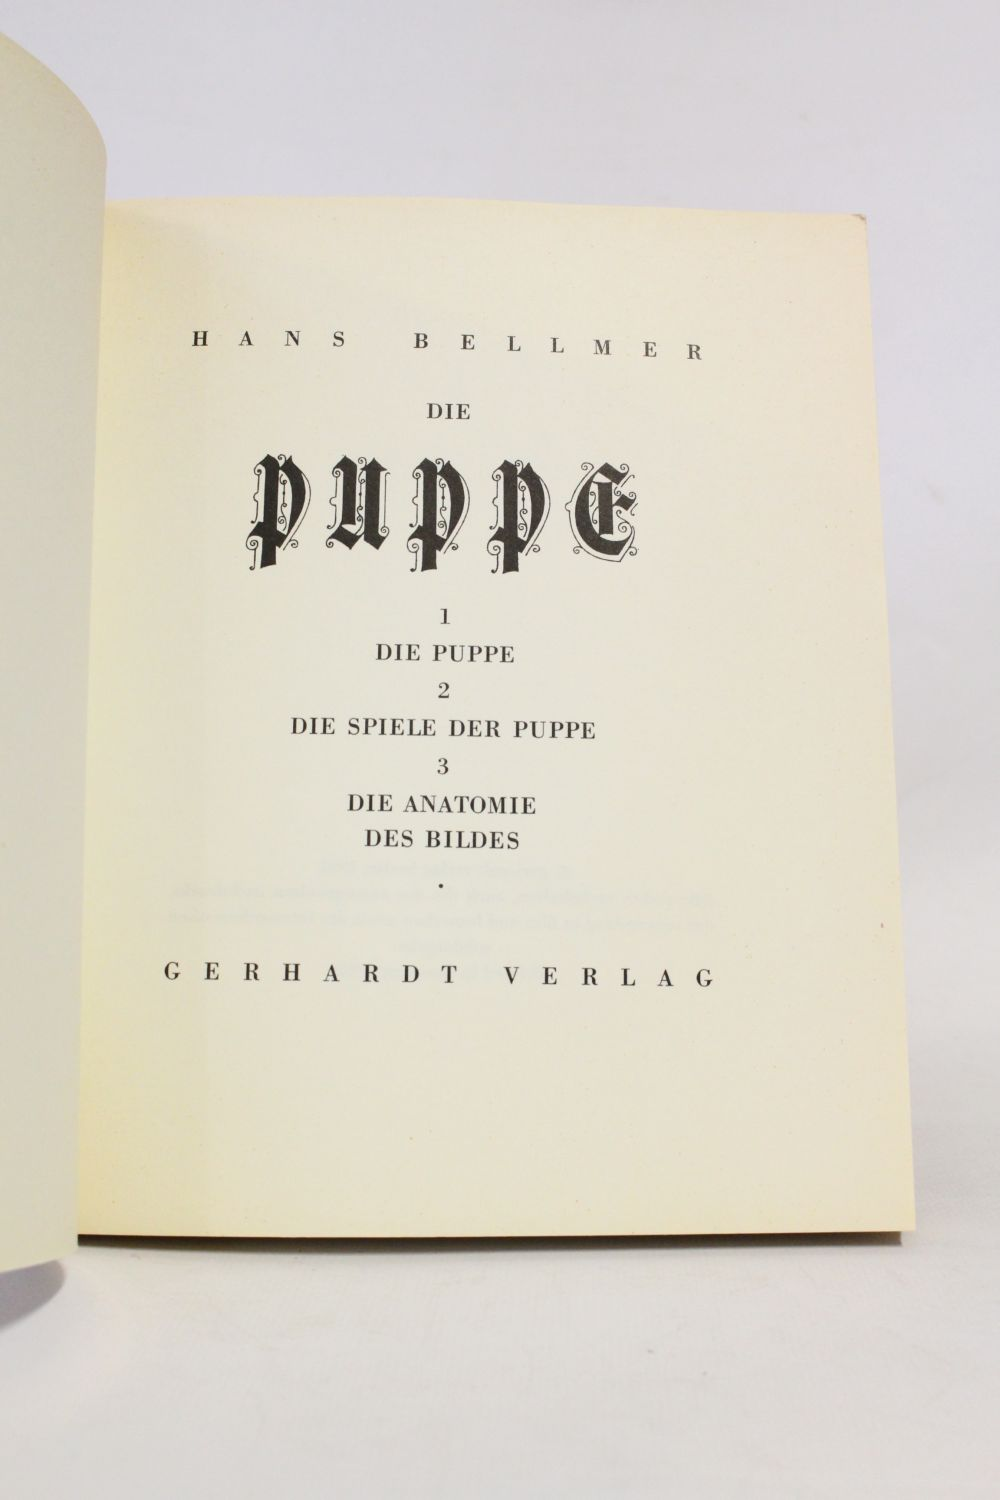 BELLMER : Die puppe - Signed book, First edition - Edition-Originale.com